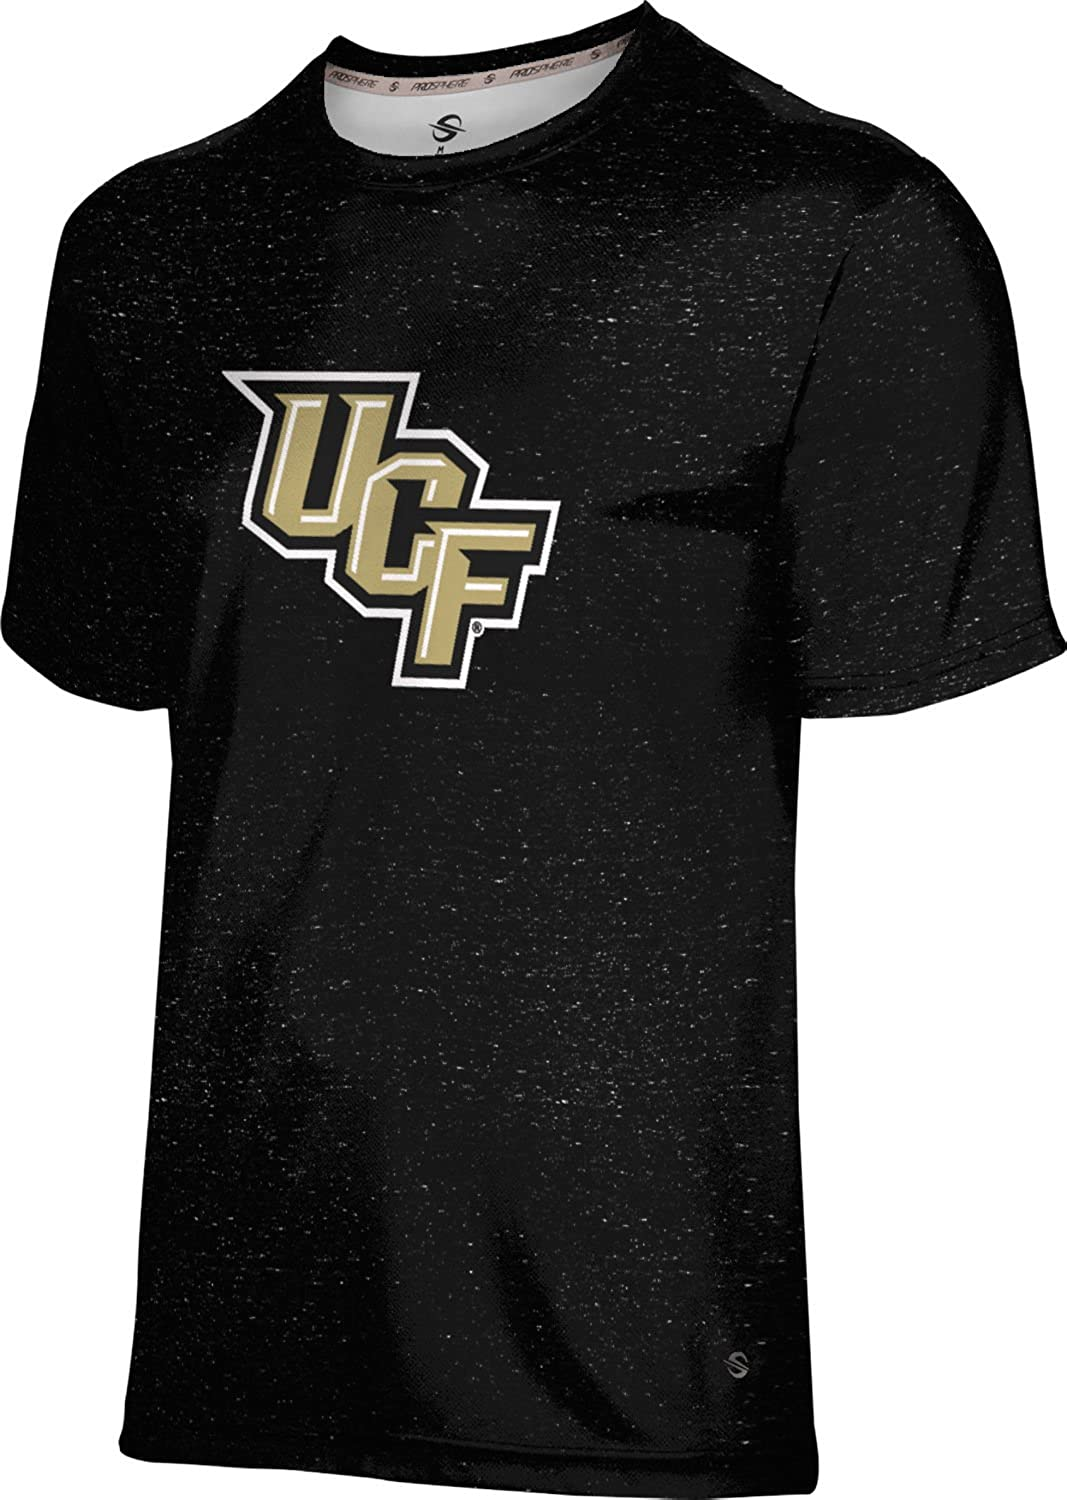 ProSphere University of Central Florida Boys Performance T-Shirt Heather